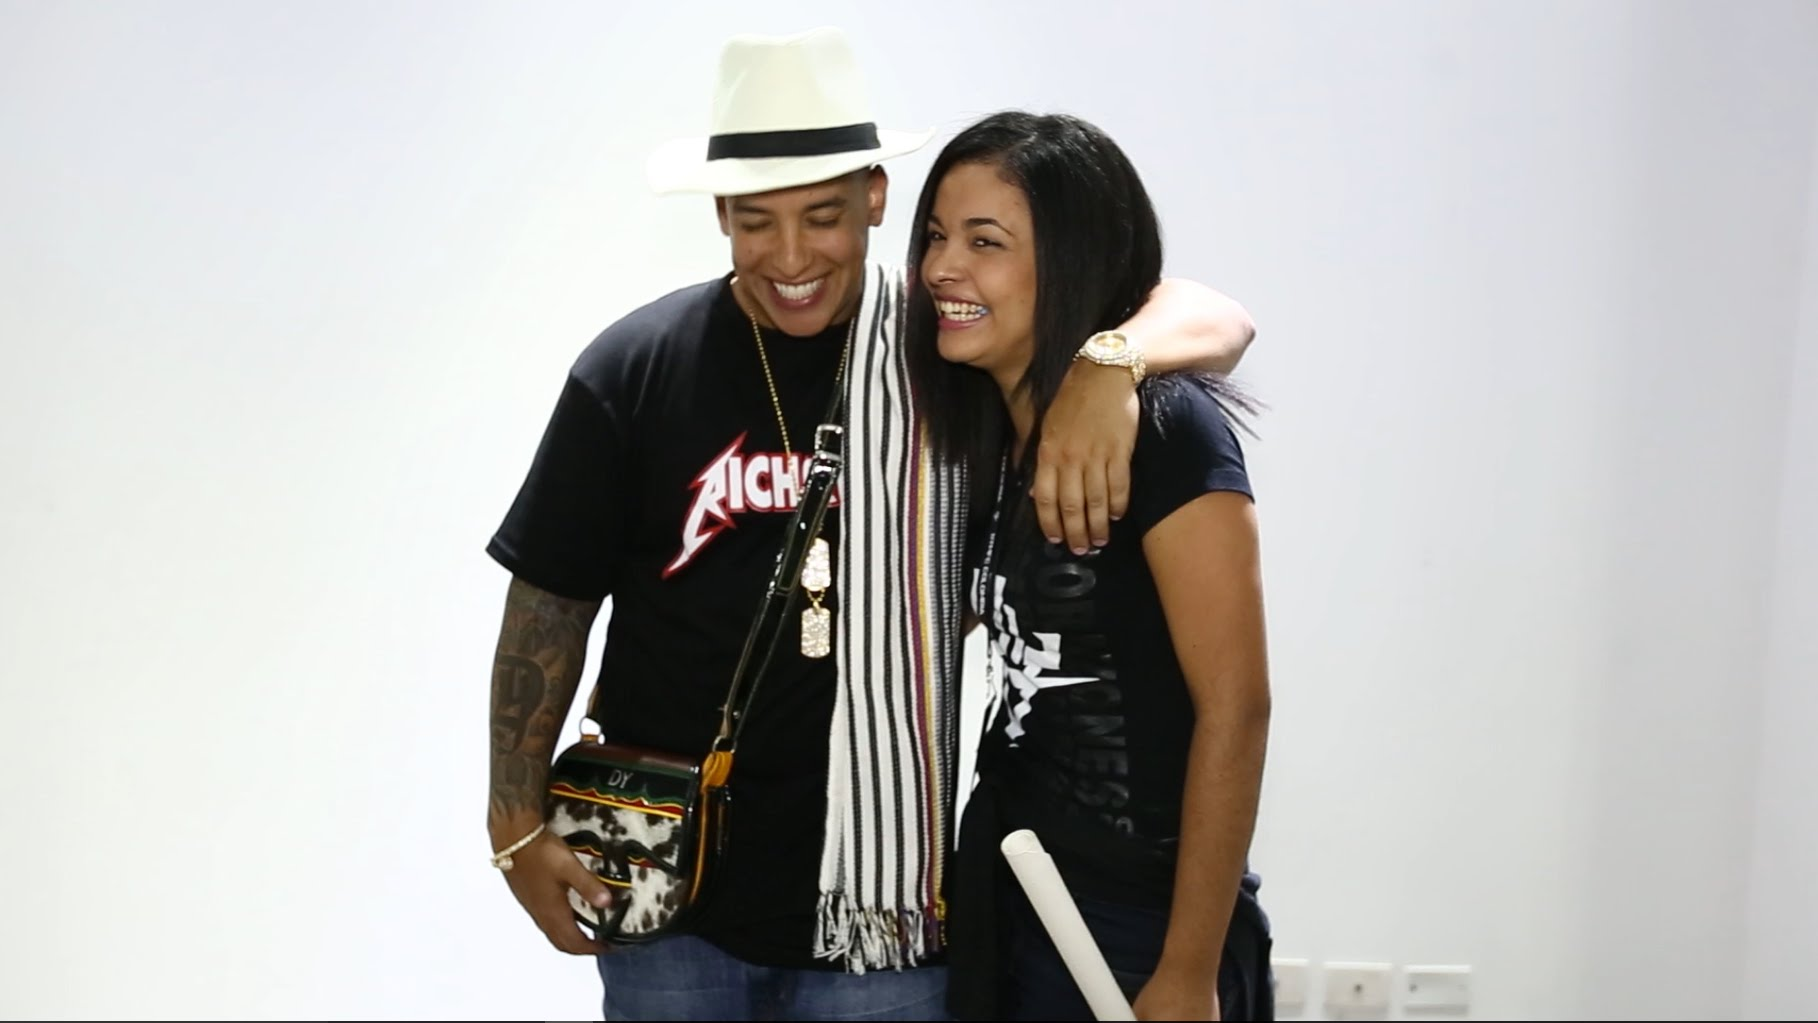 Daddy Yankee – Meet and Greet (Colombia)